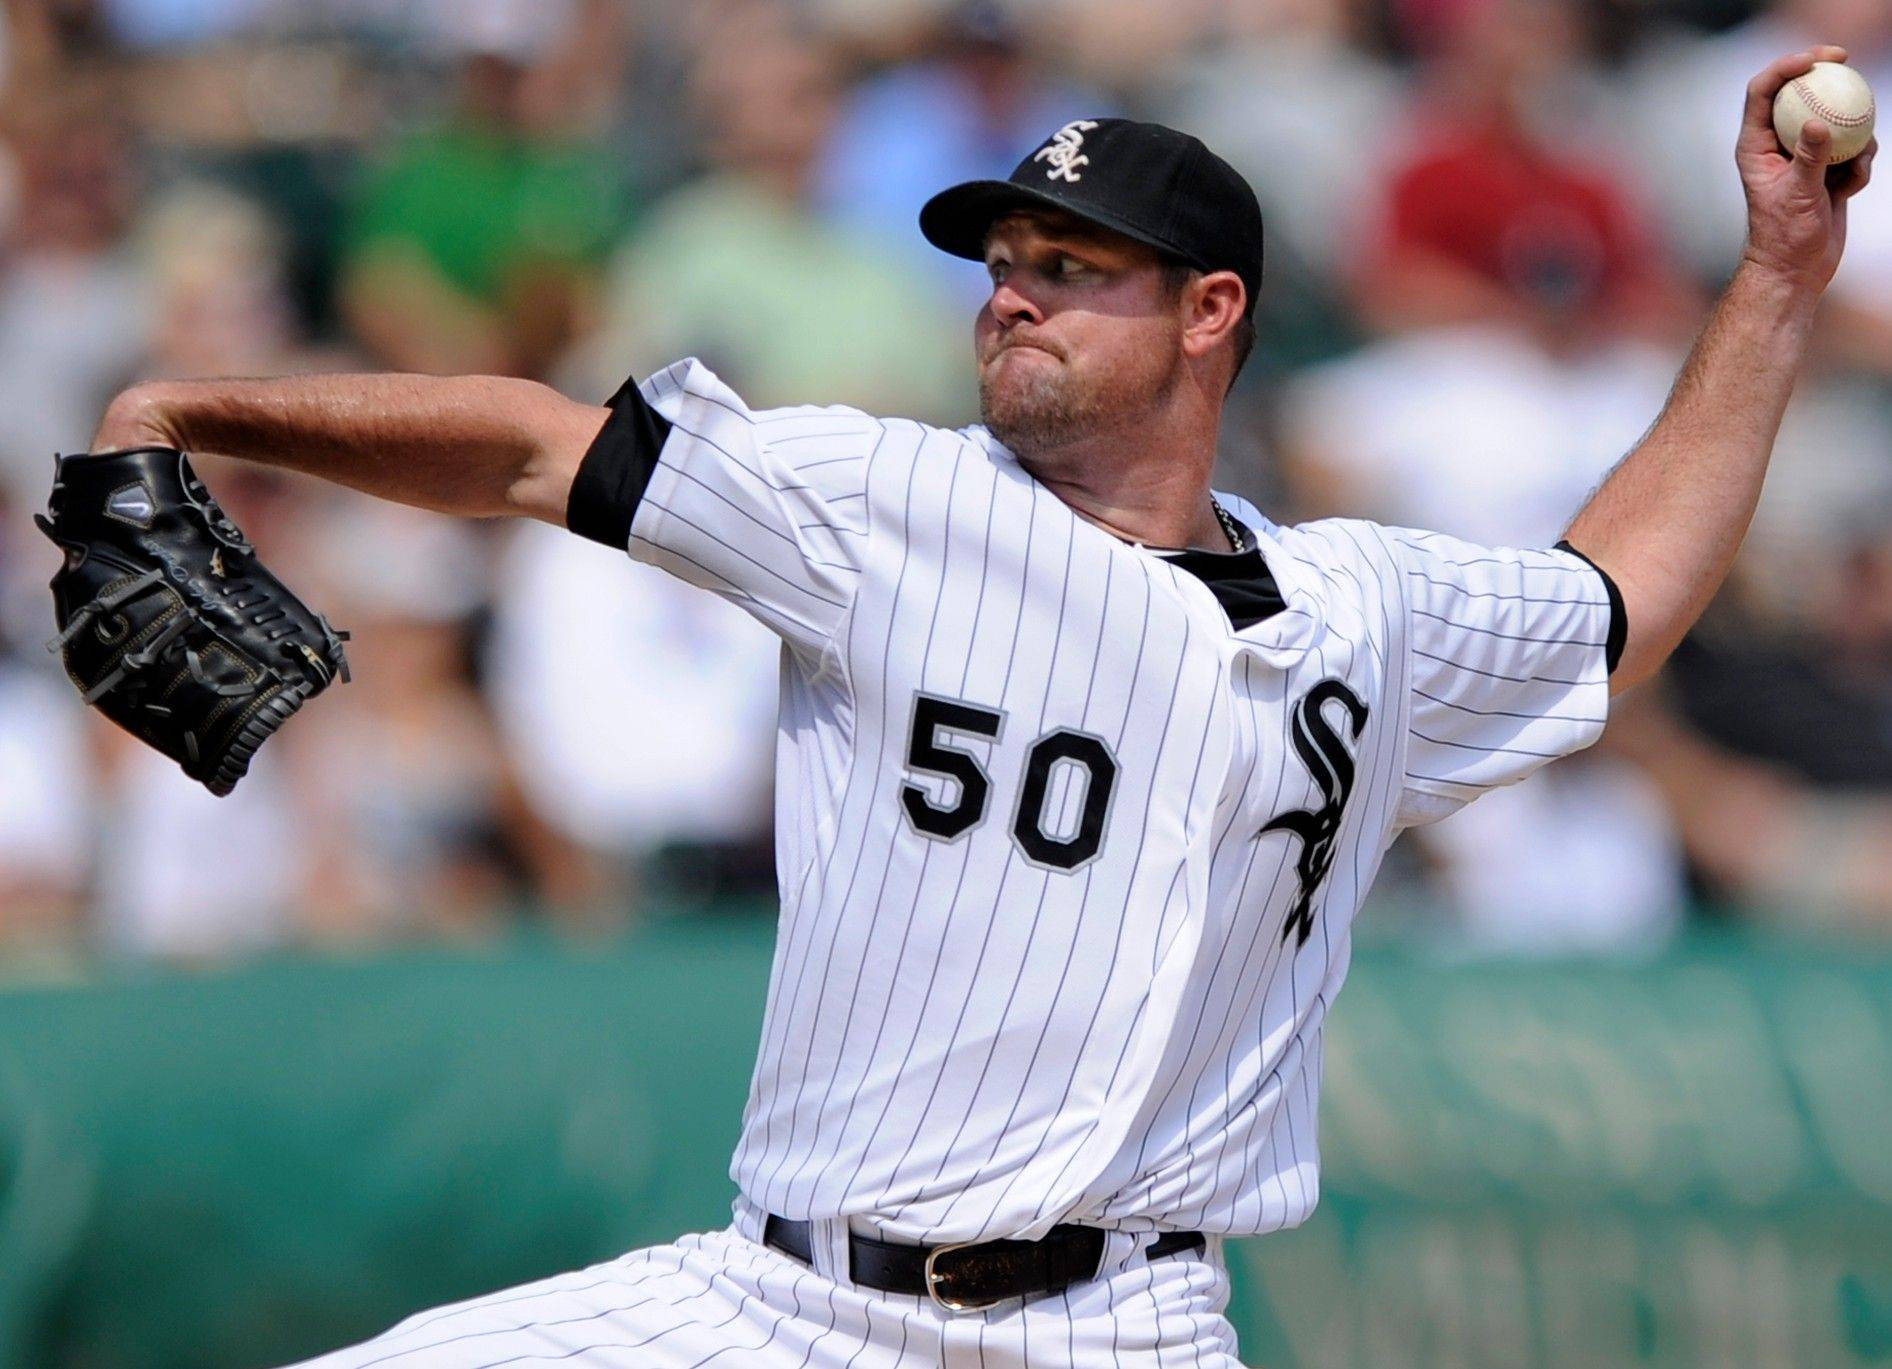 Determined Danks prevails for White Sox